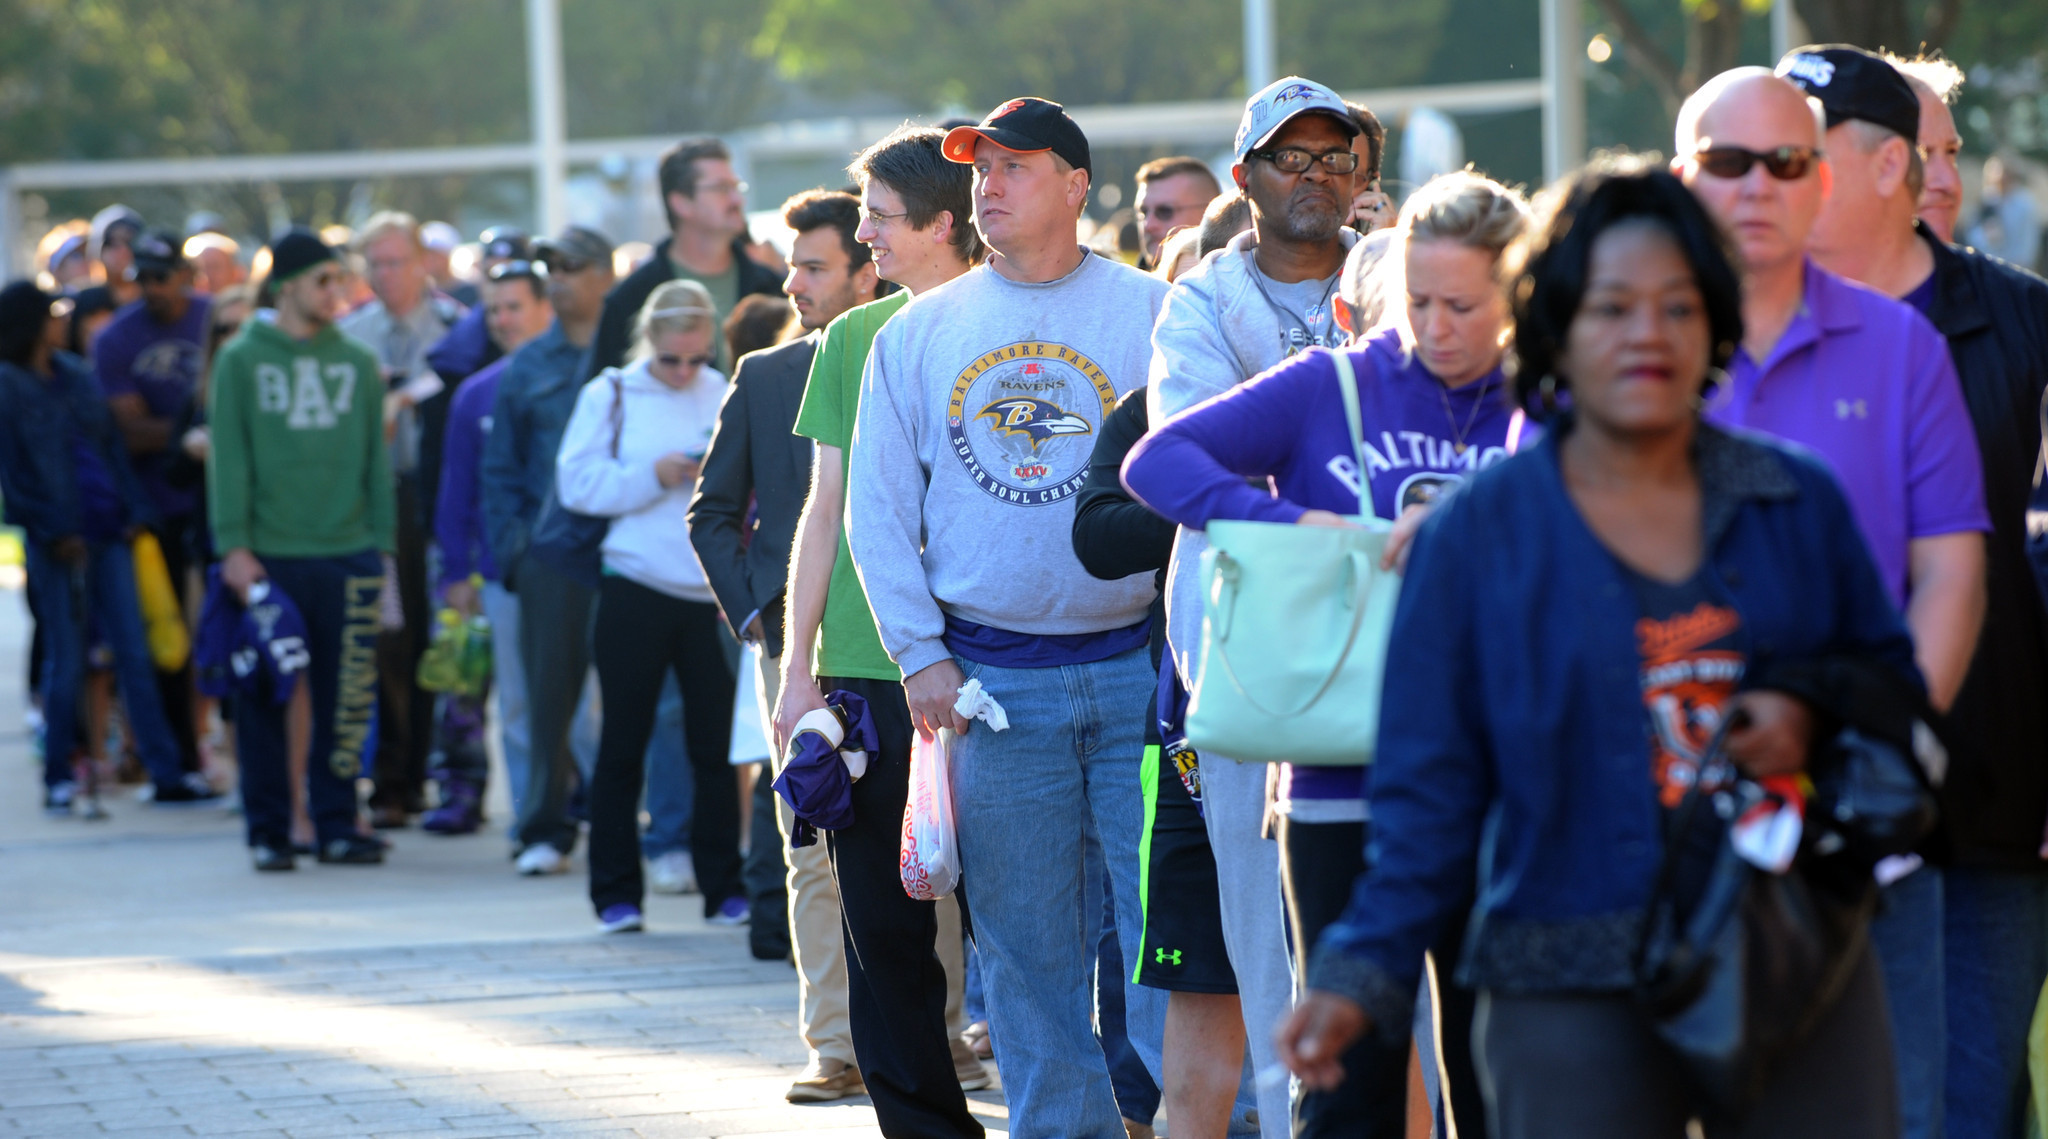 7204361c12e Fans line up to turn in their Ray Rice jerseys at M&T Bank Stadium -  Baltimore Sun